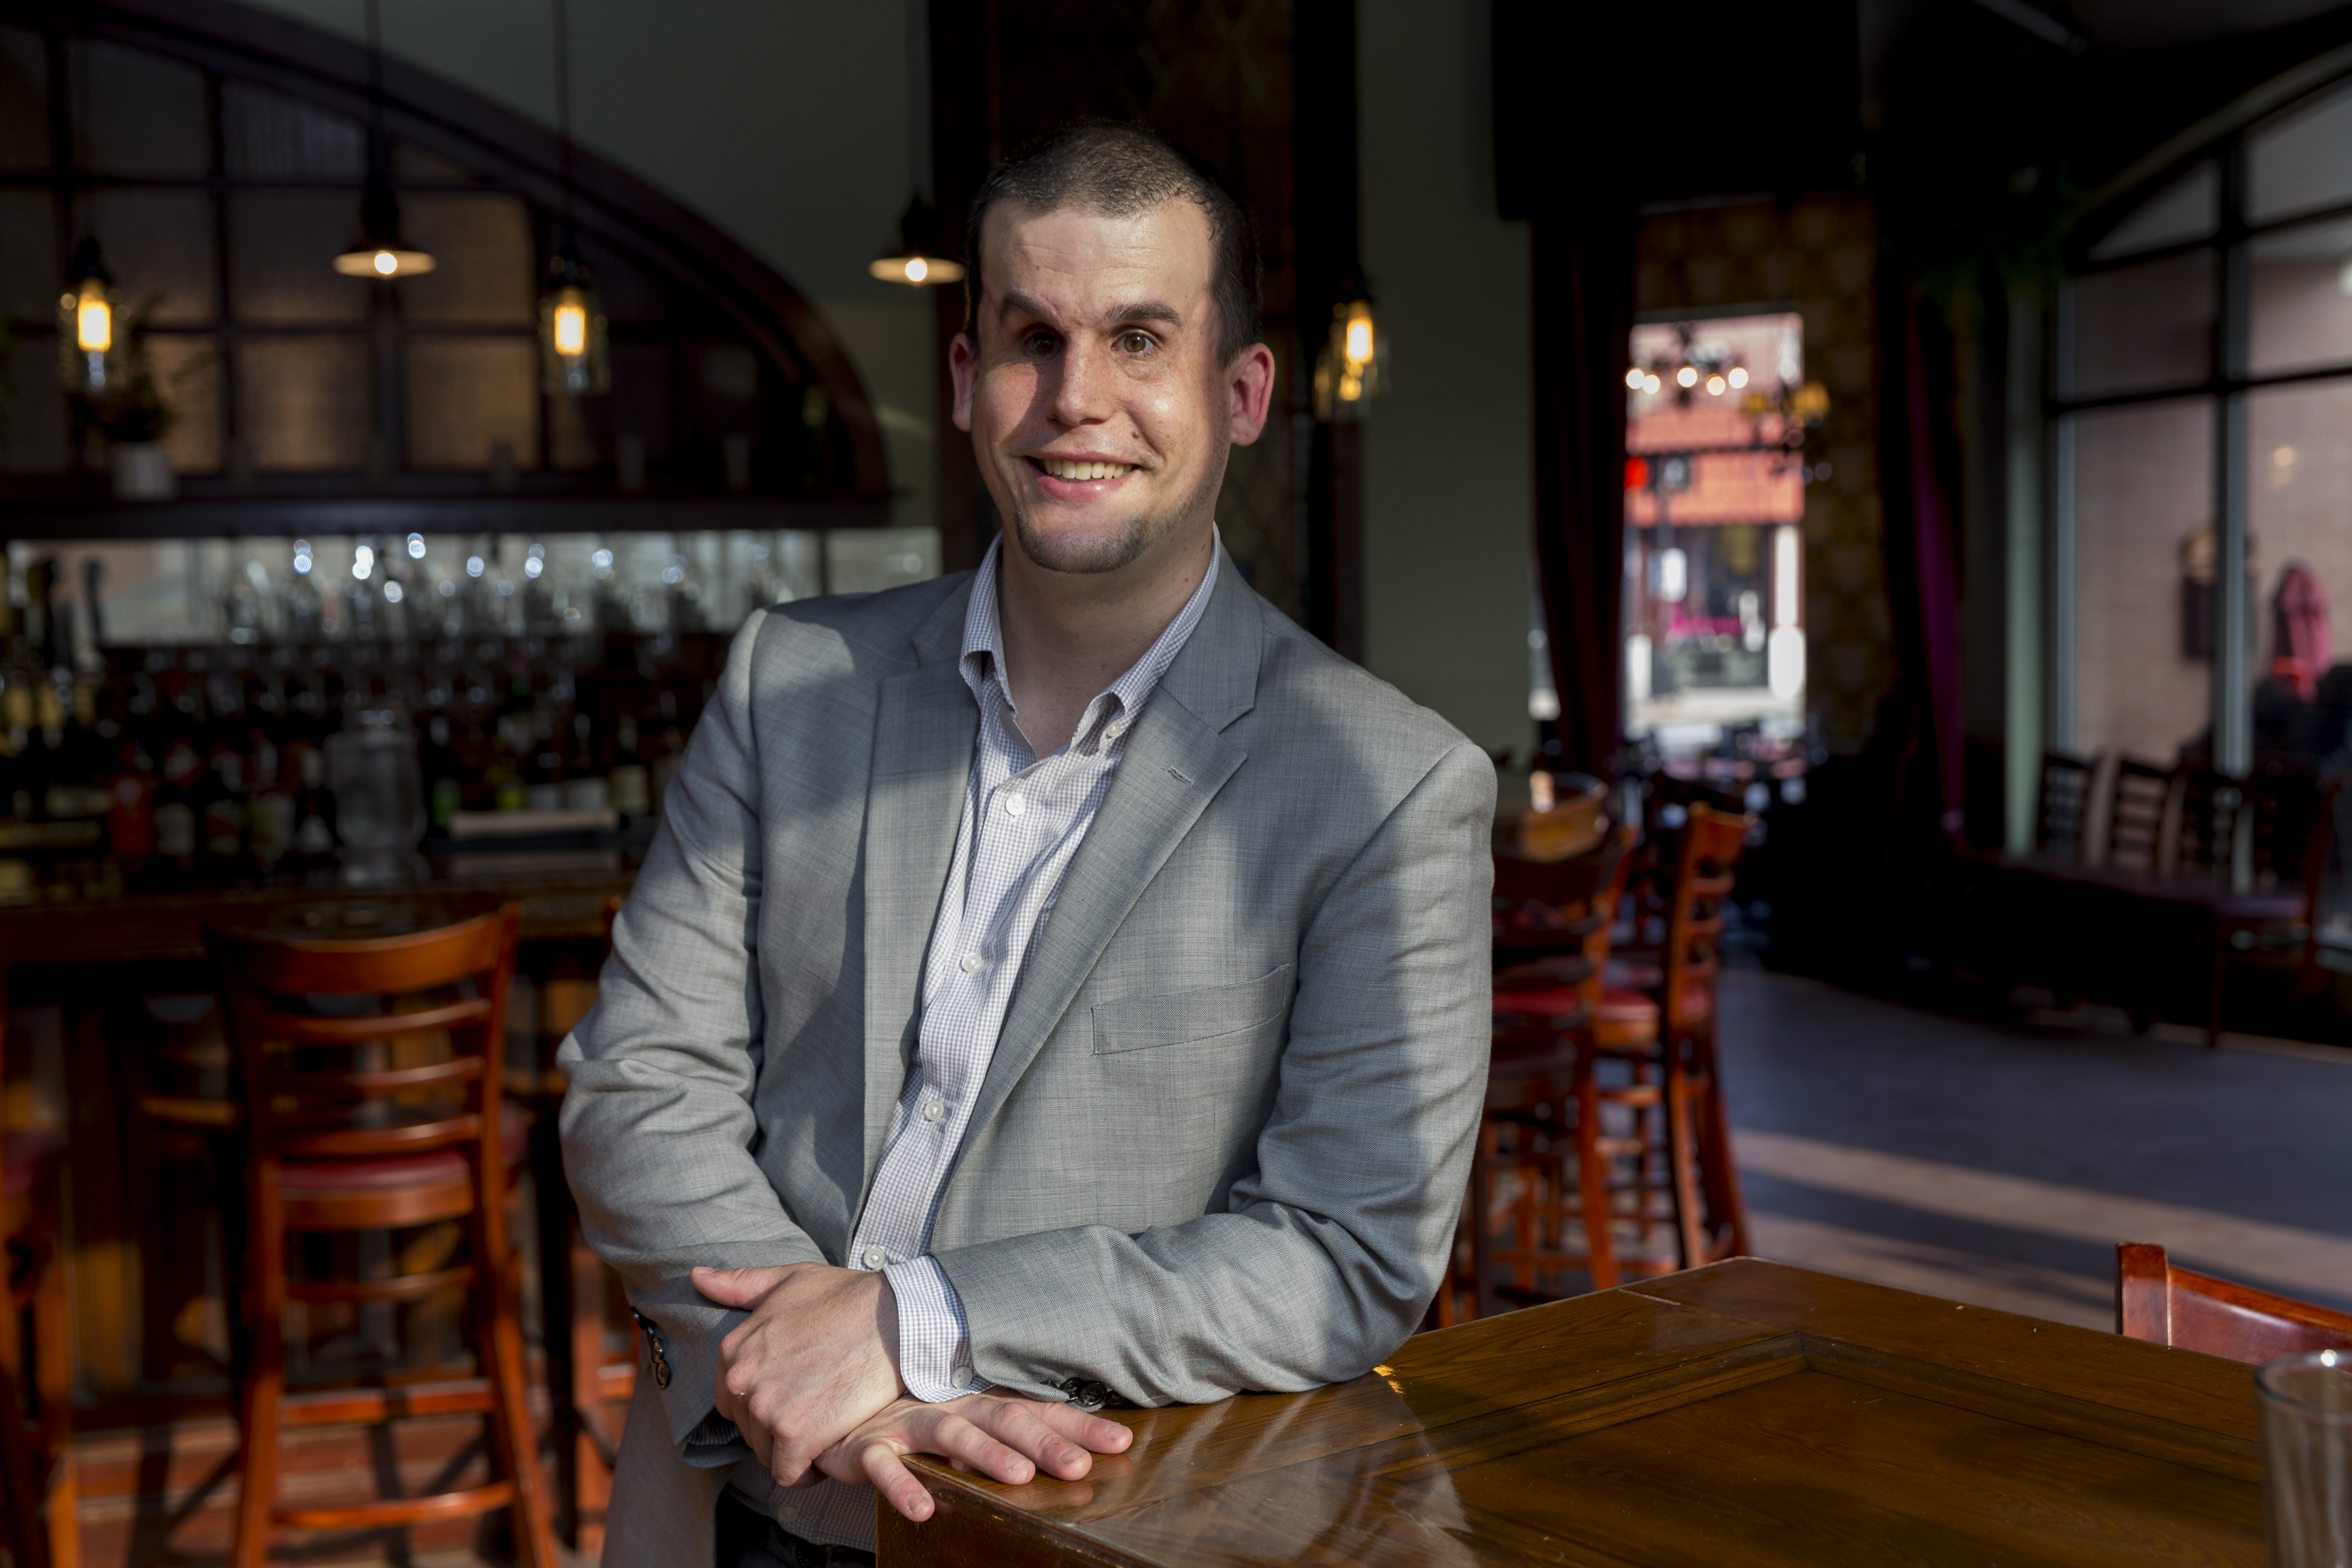 Alex Homans, co-owner and beverage director at The Frogmore